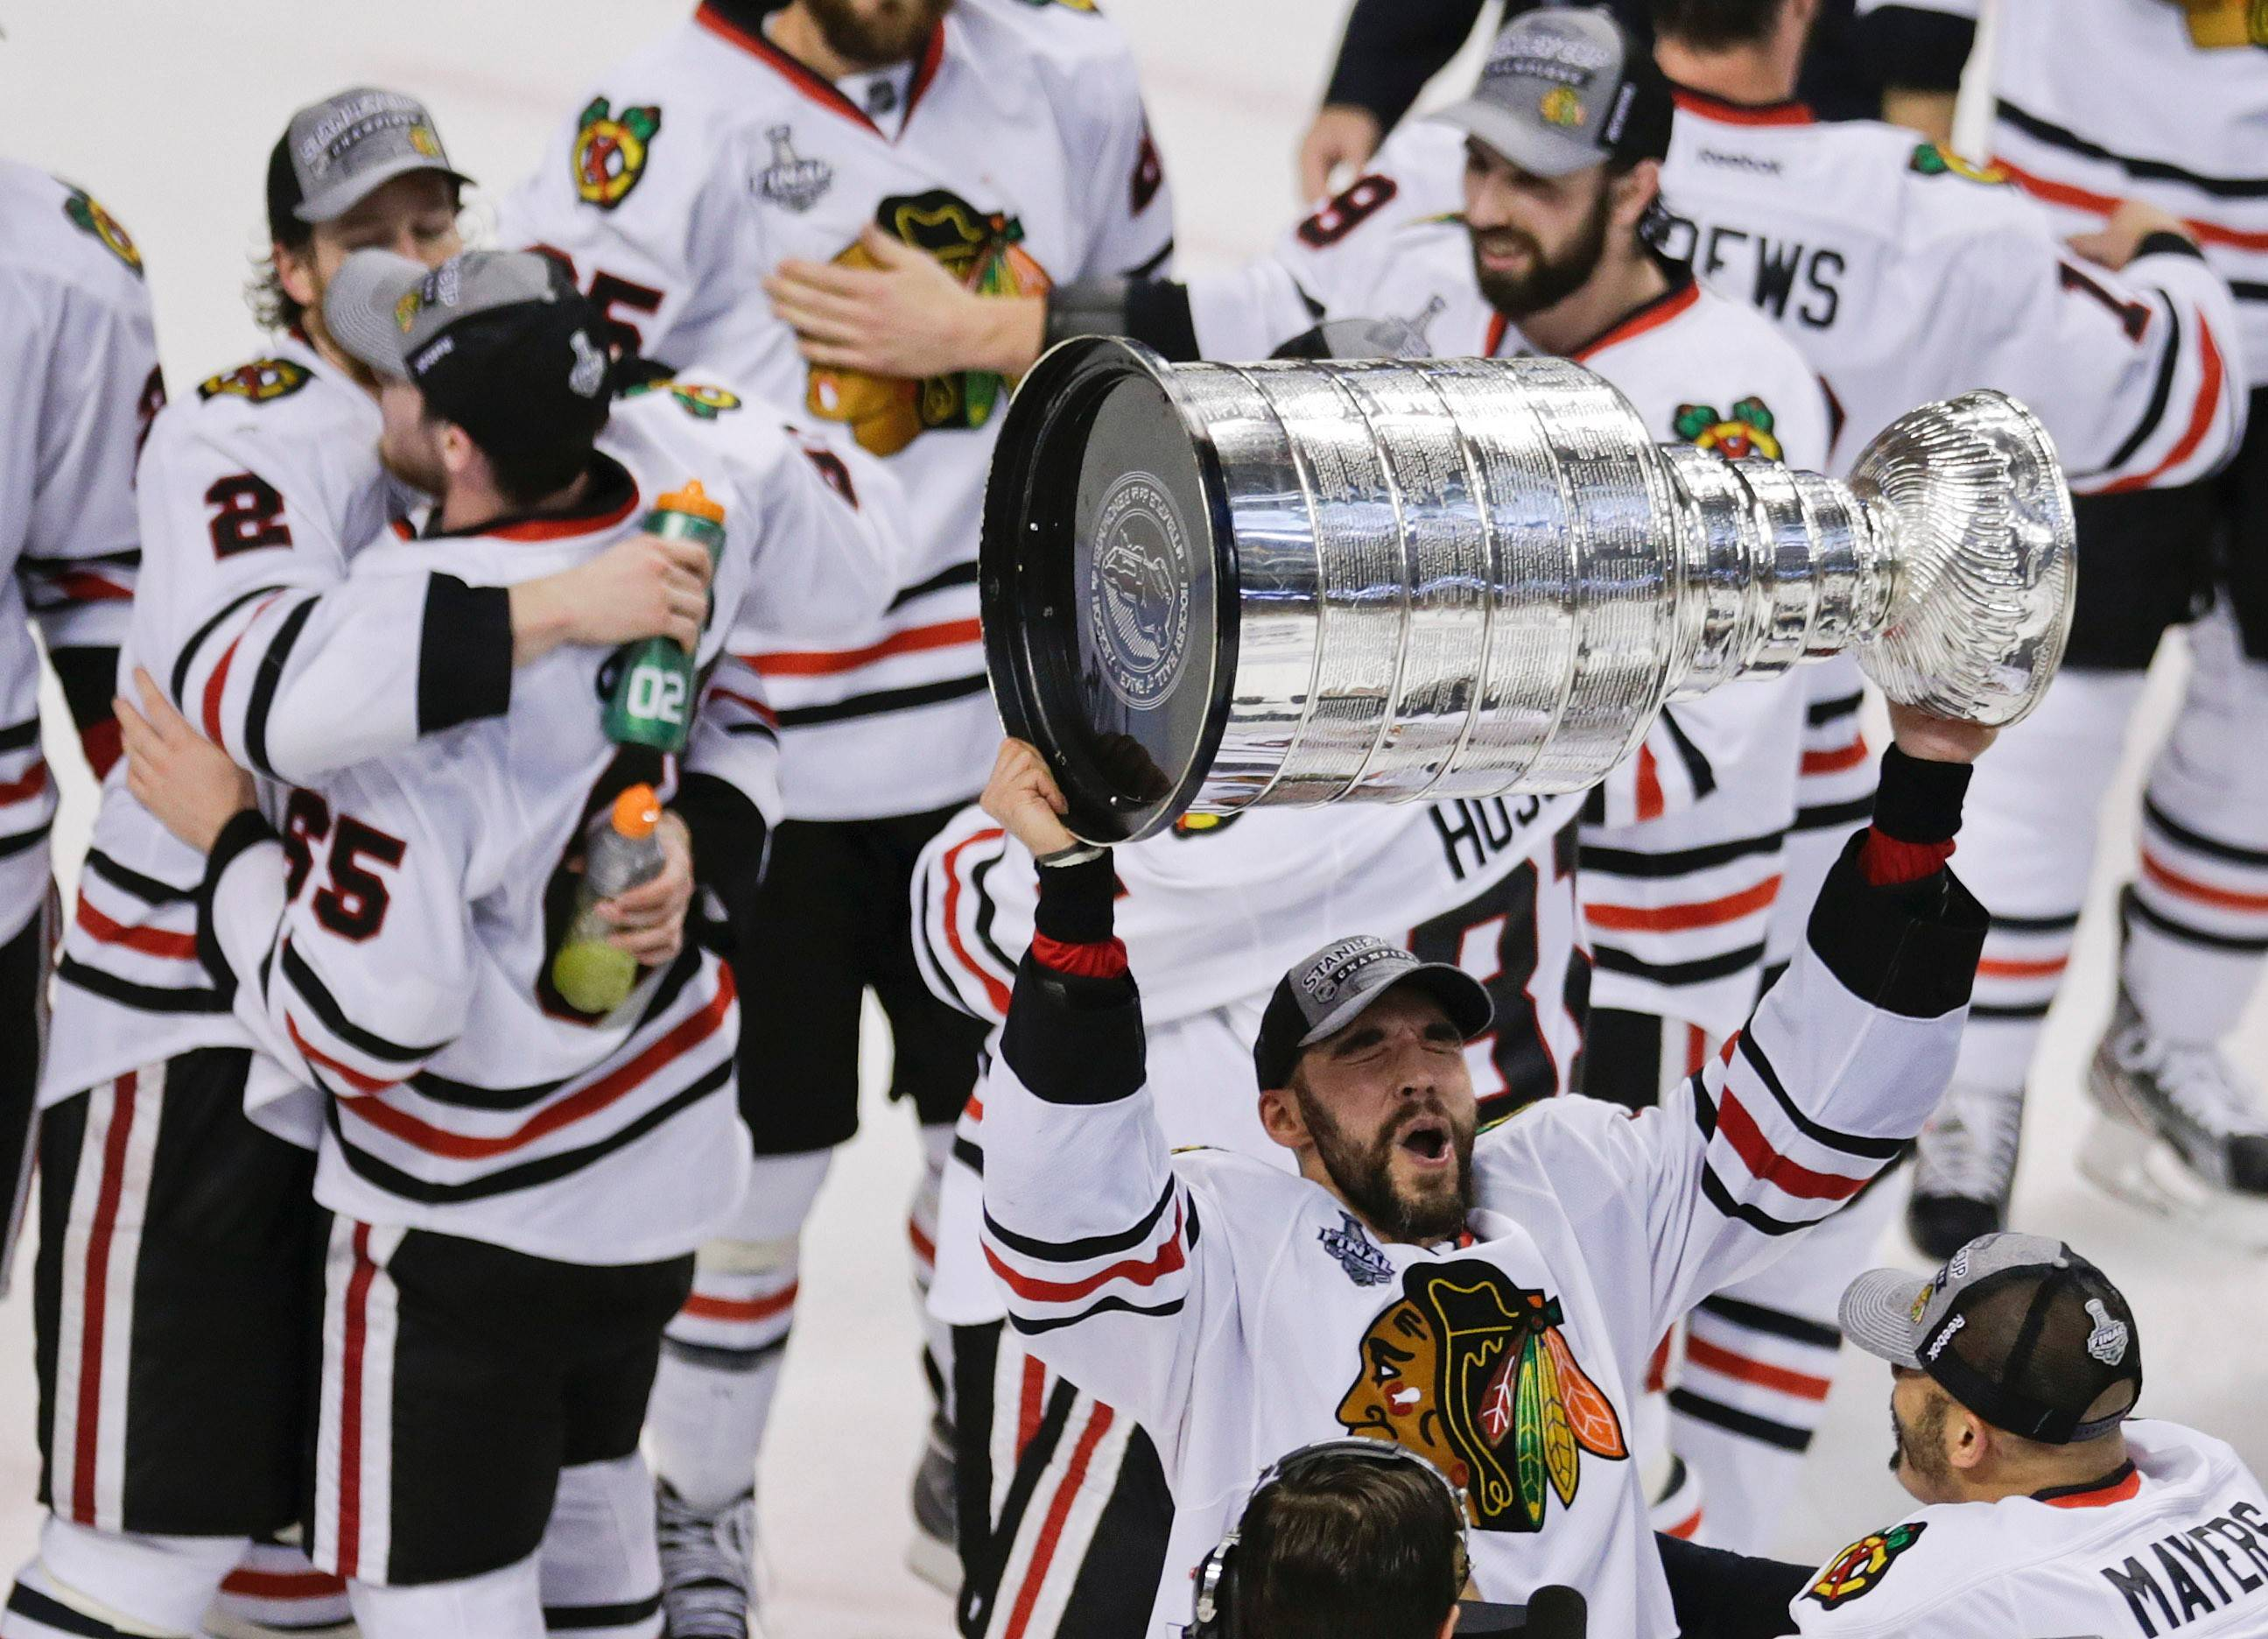 Images: A look back at the Blackhawks 2013 Stanley Cup victory